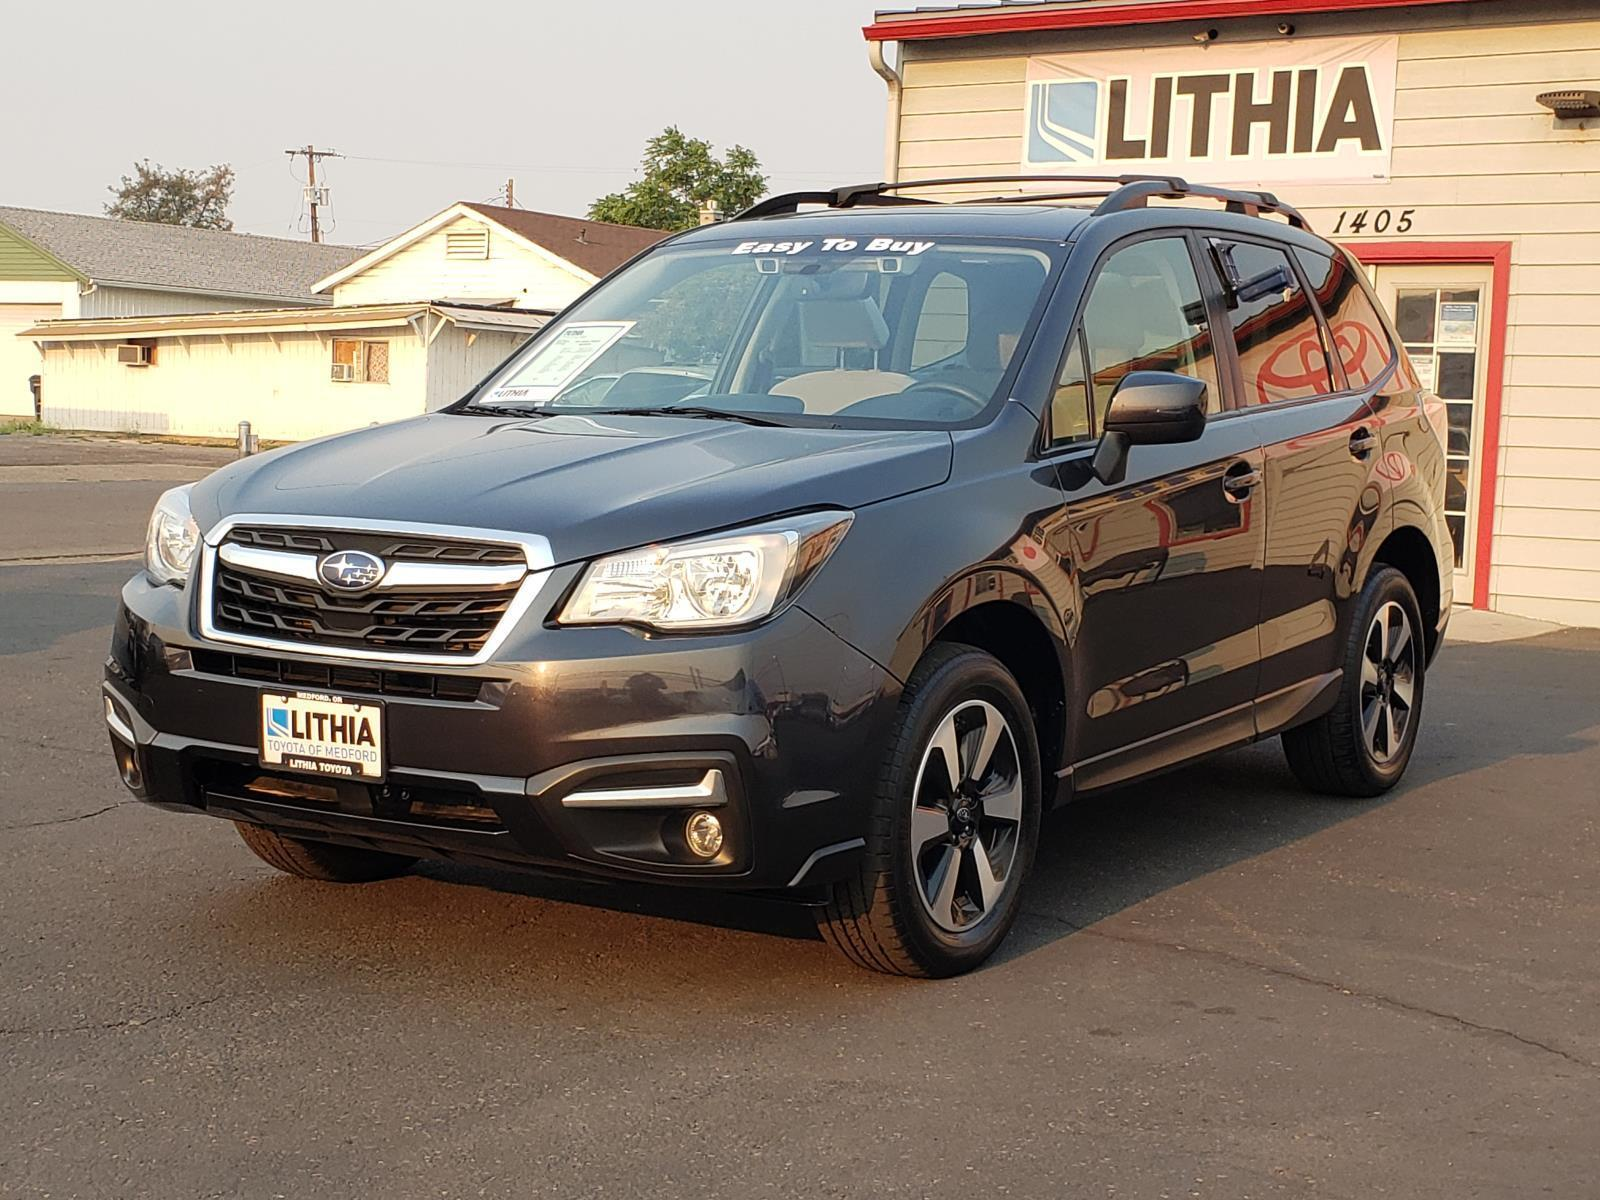 used 2017 Subaru Forester car, priced at $26,995